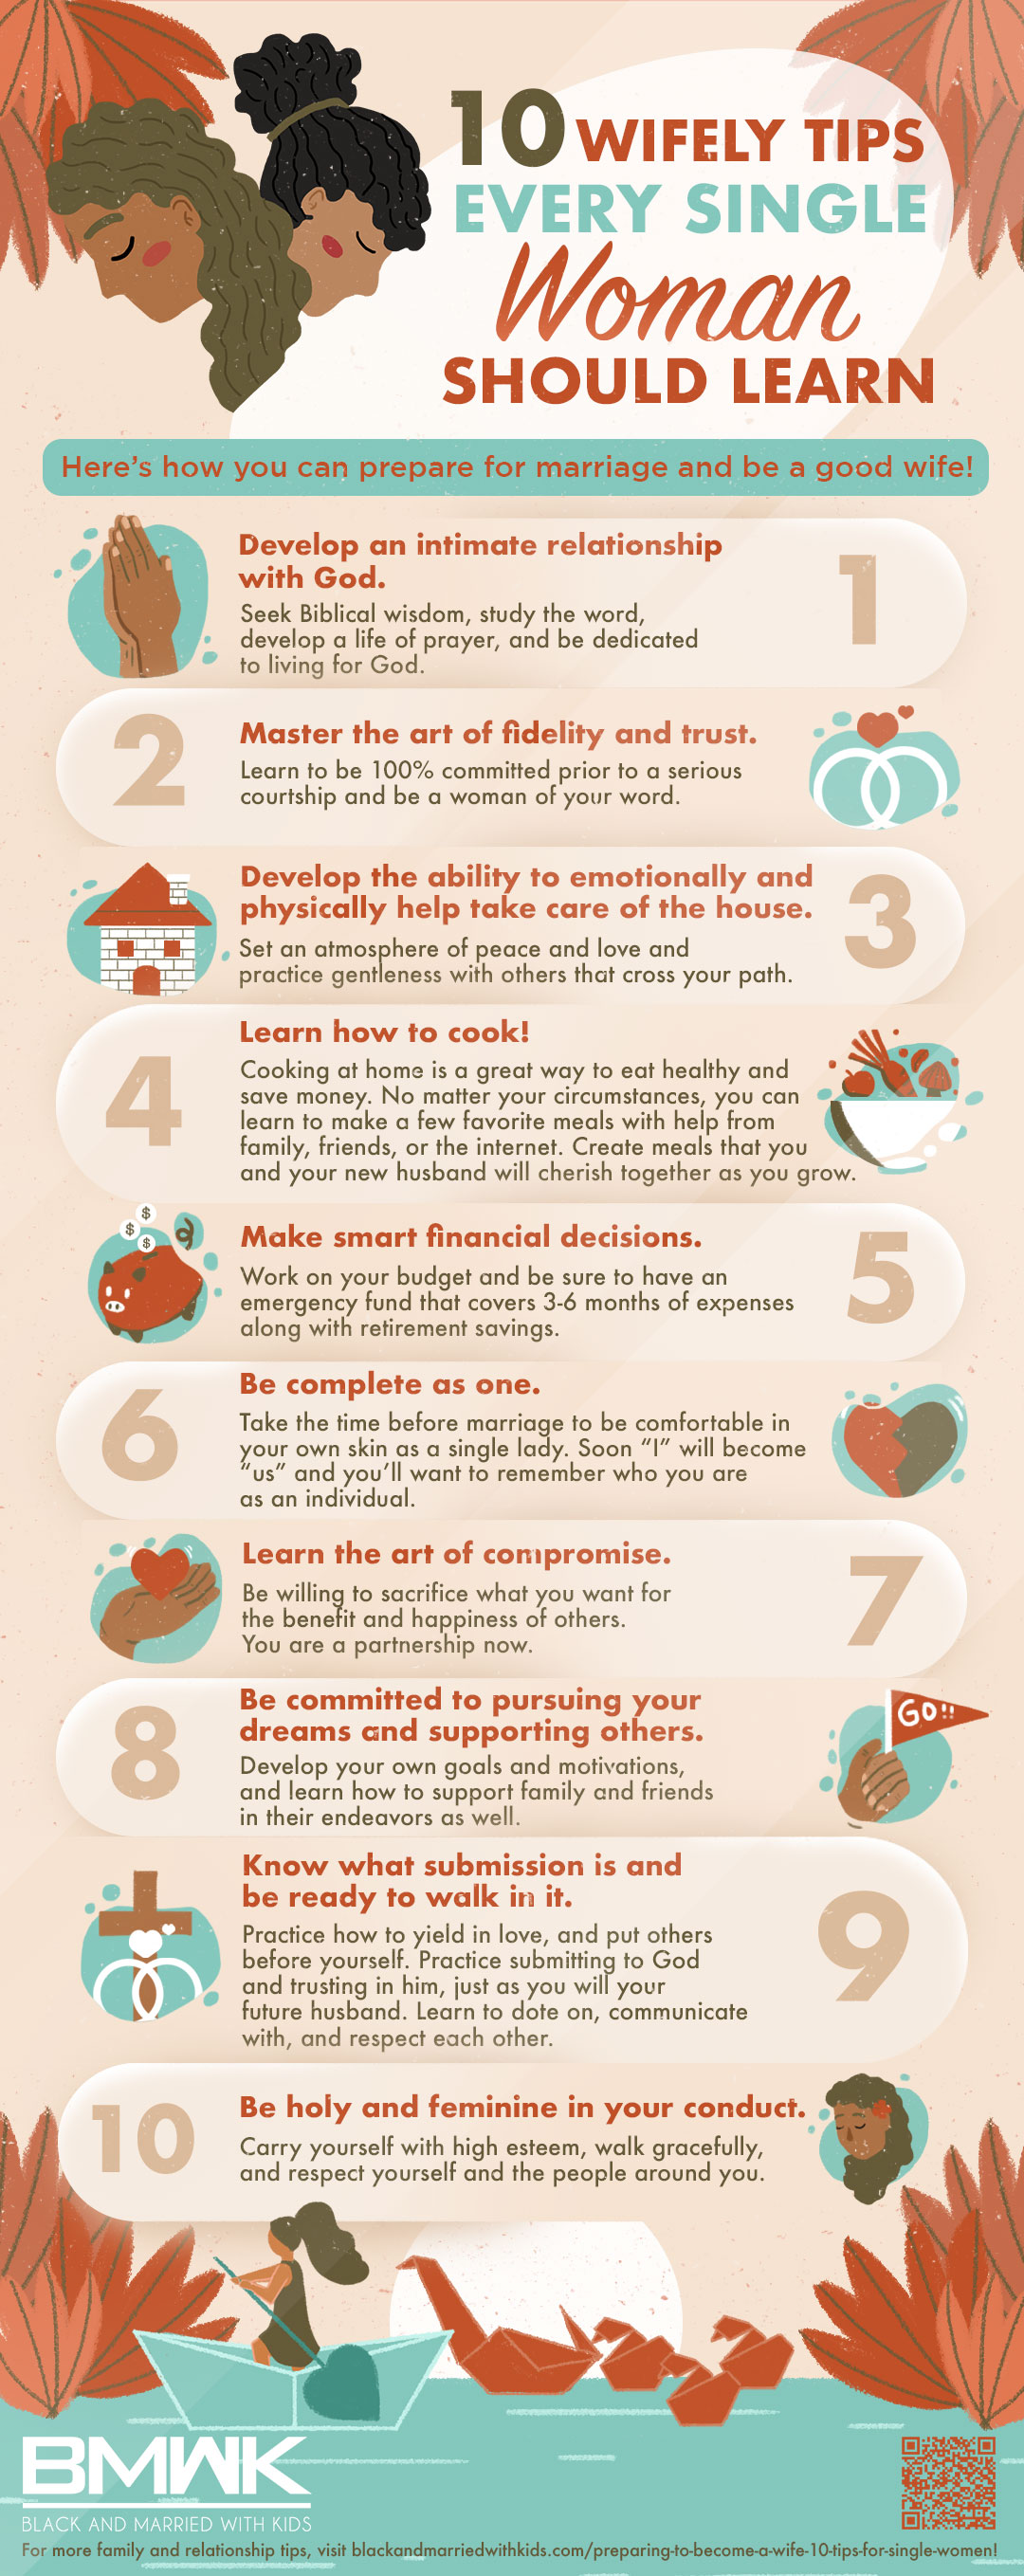 infographic | Preparing To Become A Wife: 10 Tips For Single Women